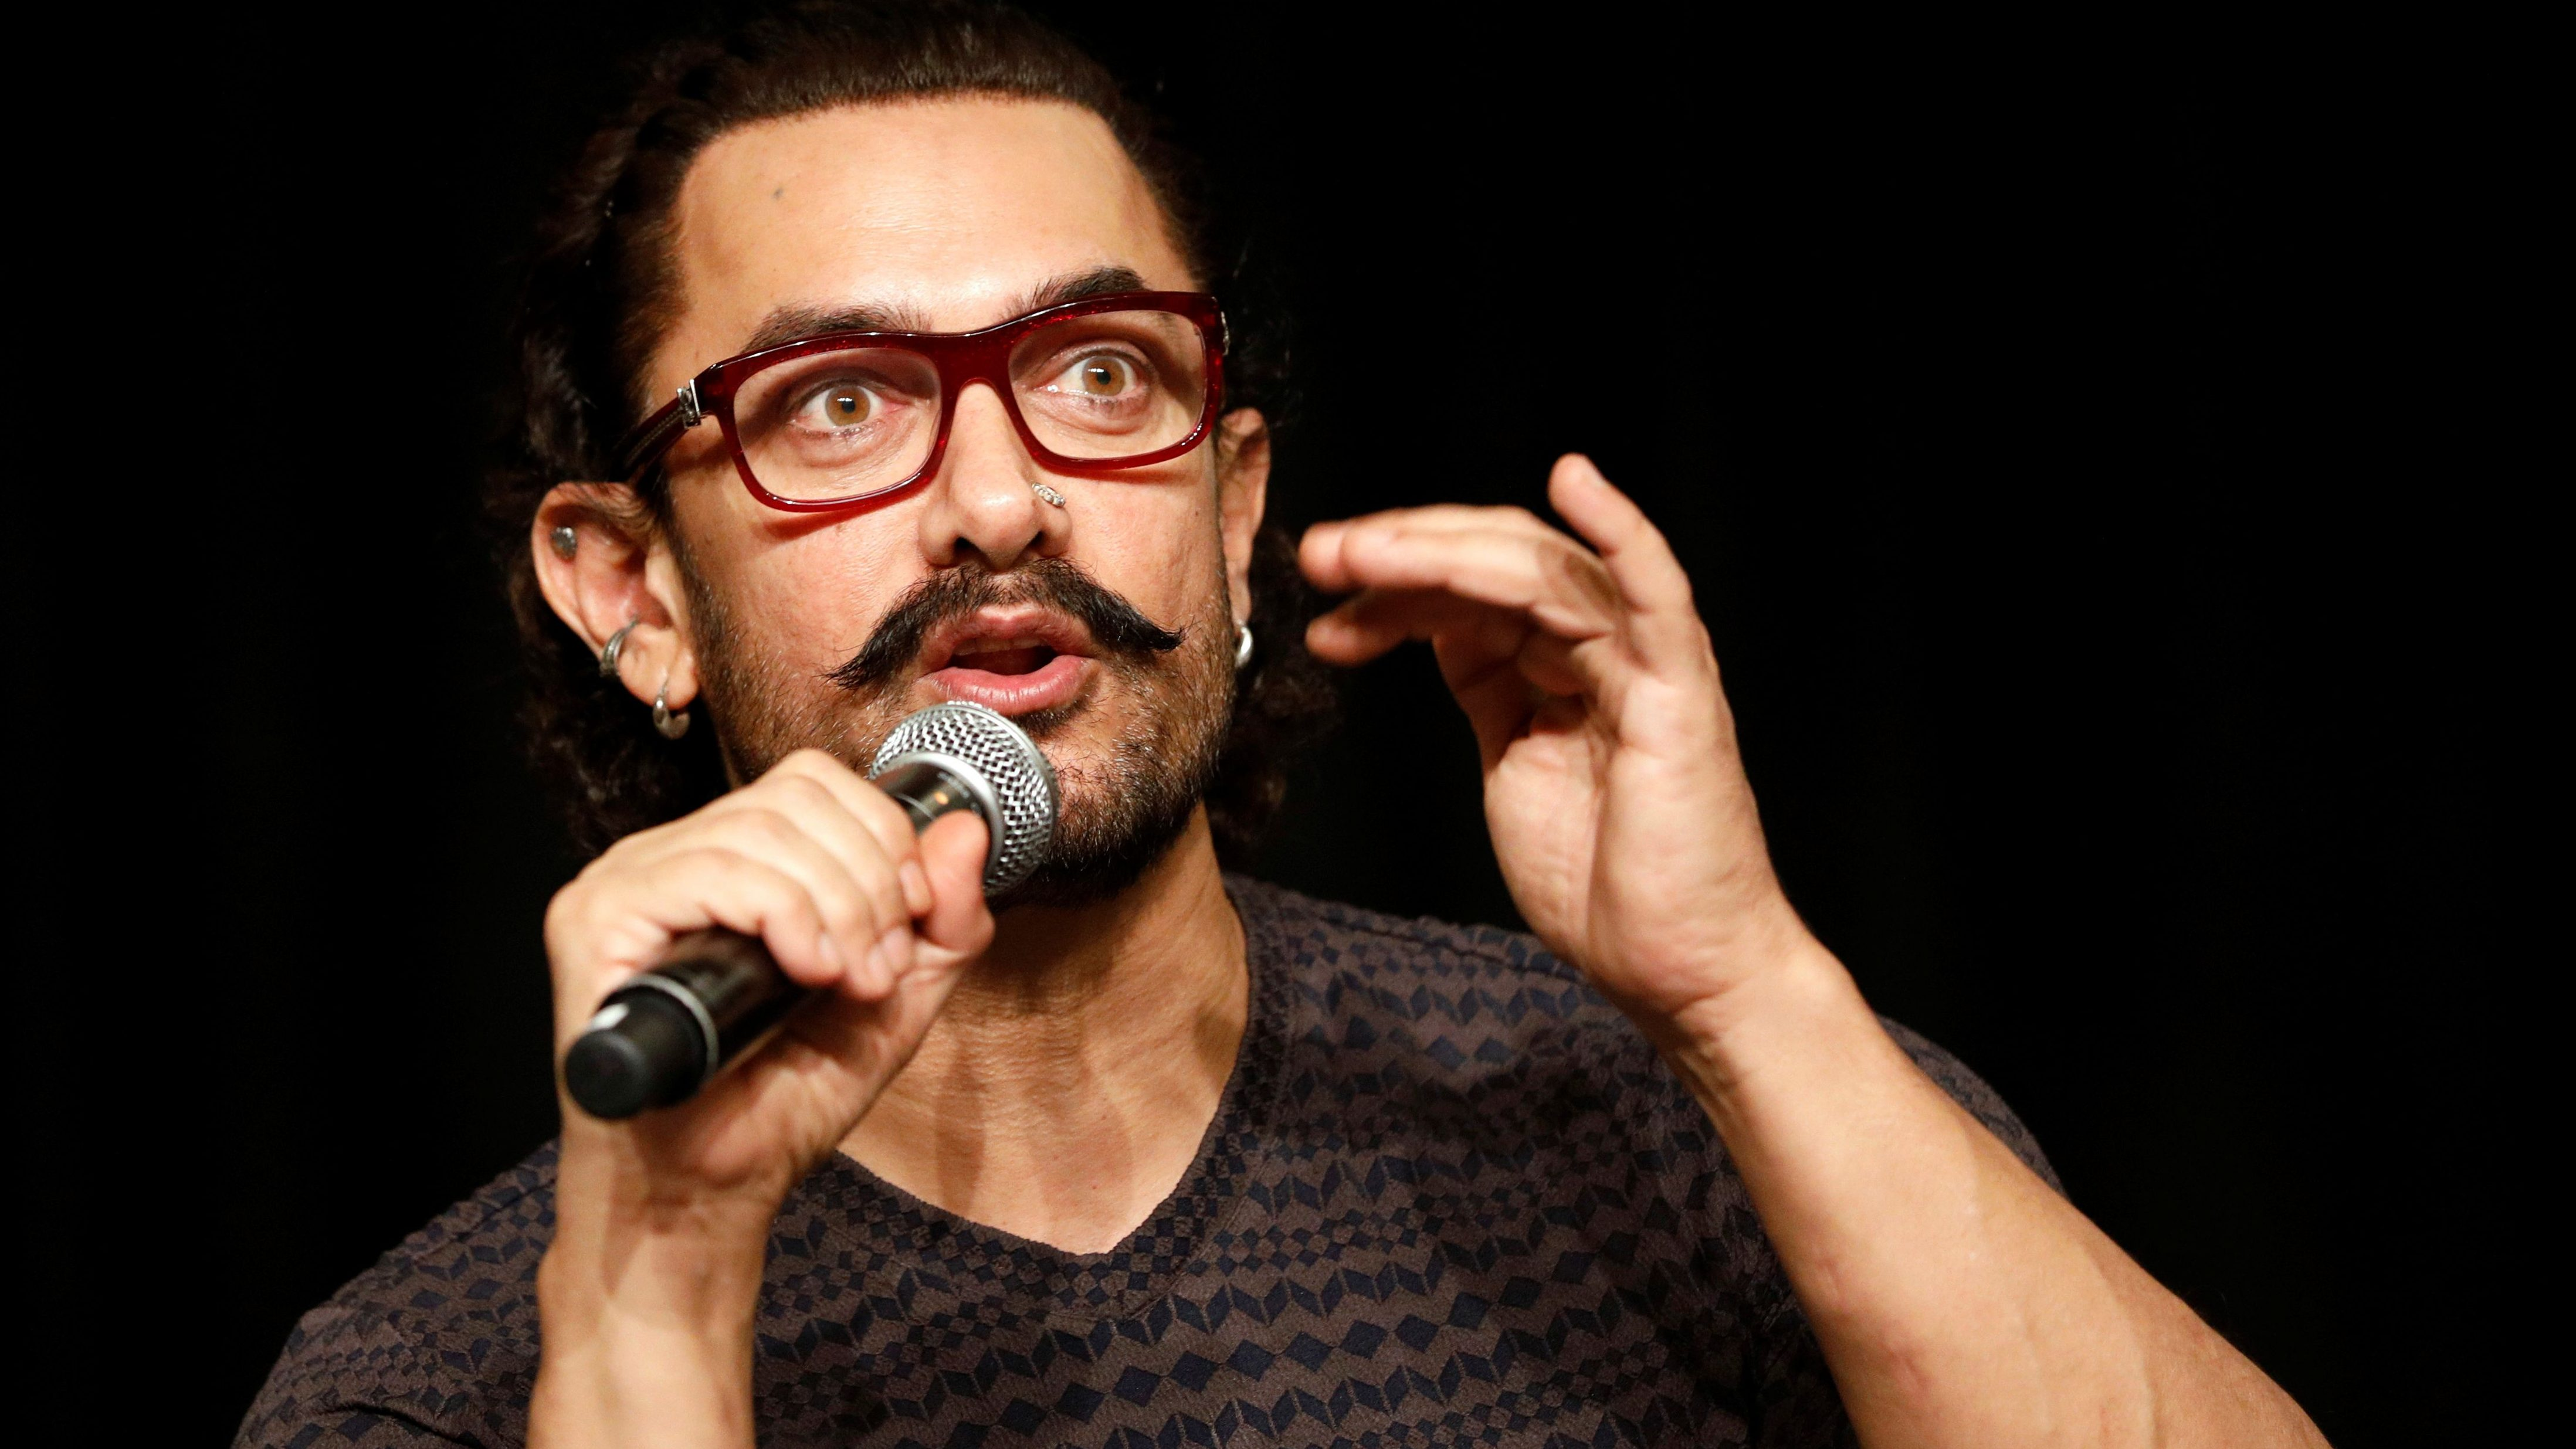 """Actor Aamir Khan speaks during a news conference to promote his movie """"Secret Superstar"""" in Singapore October 2, 2017. REUTERS/Edgar Su"""